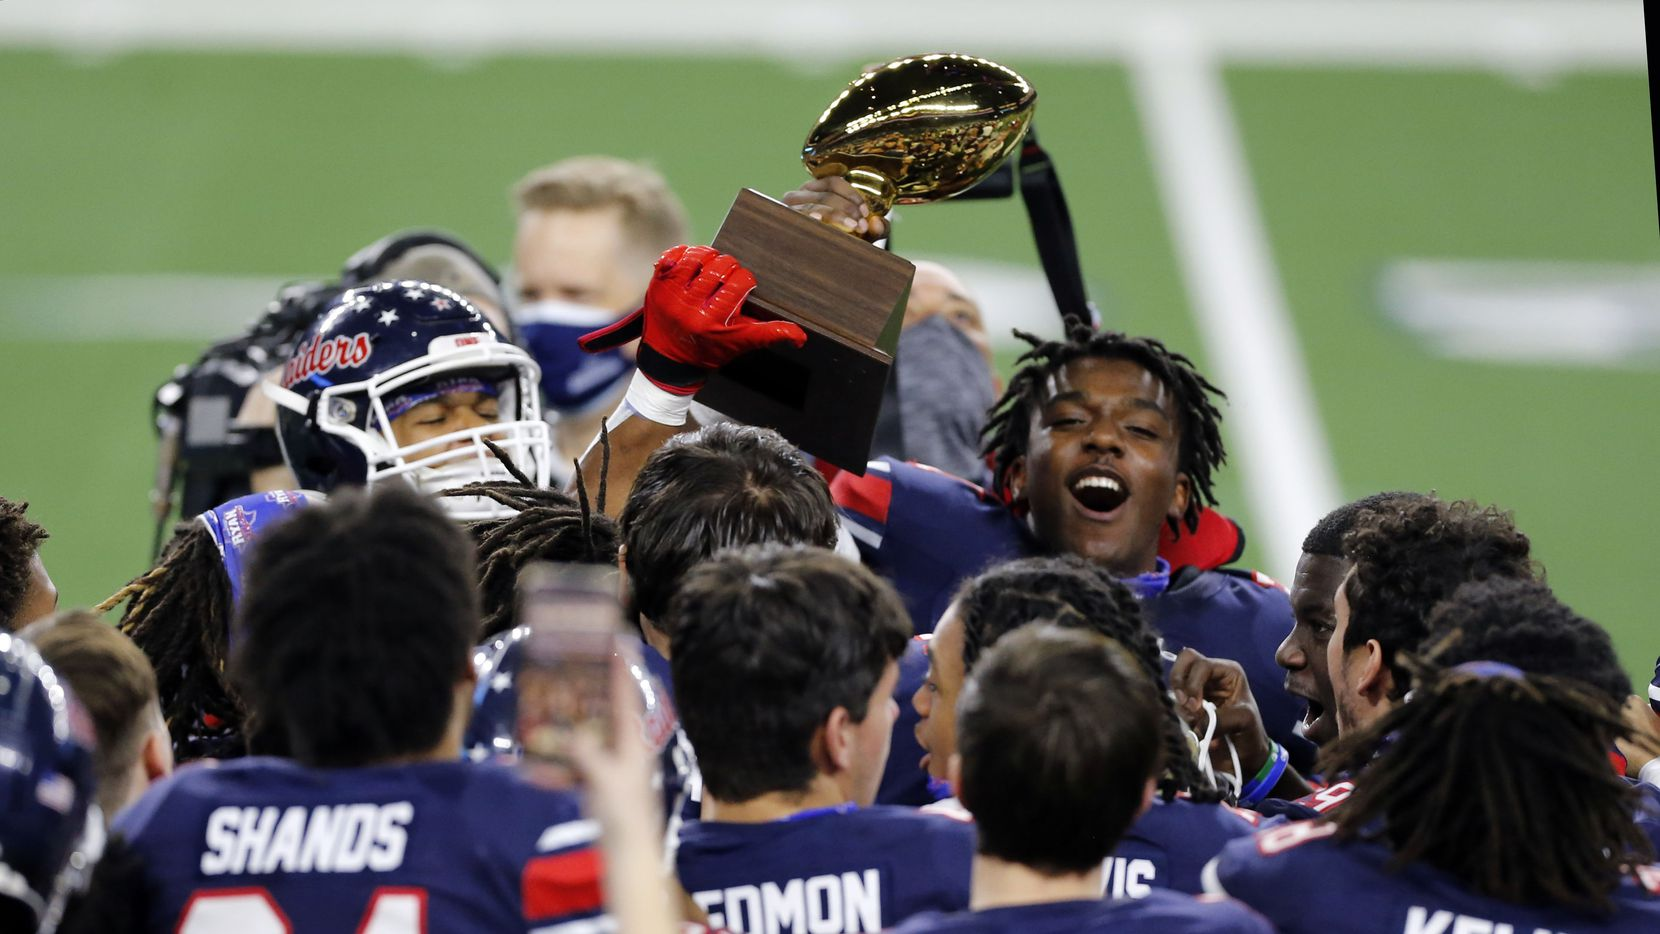 Members of the Denton Ryan football team celebrate with the trophy after winning the Class 5A Division I state semifinal football playoff game against Mansfield Summit High at AT&T Stadium in Arlington on Friday, January 8, 2021. Ryan won 49-35.